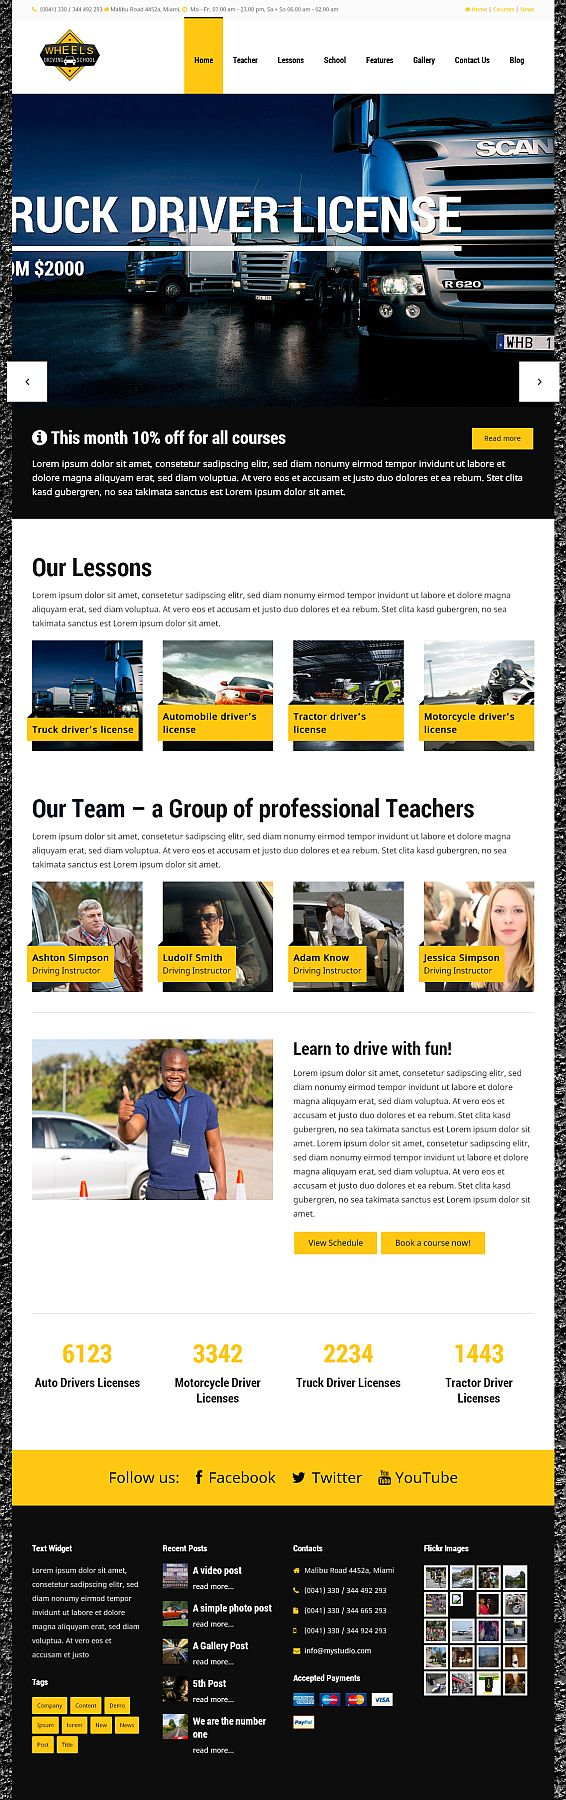 Wheels - Responsive WordPress Theme for Driving Schools. Download and Info here: http://7theme.net/downloads/wheels-wordpress-driving-school-theme/